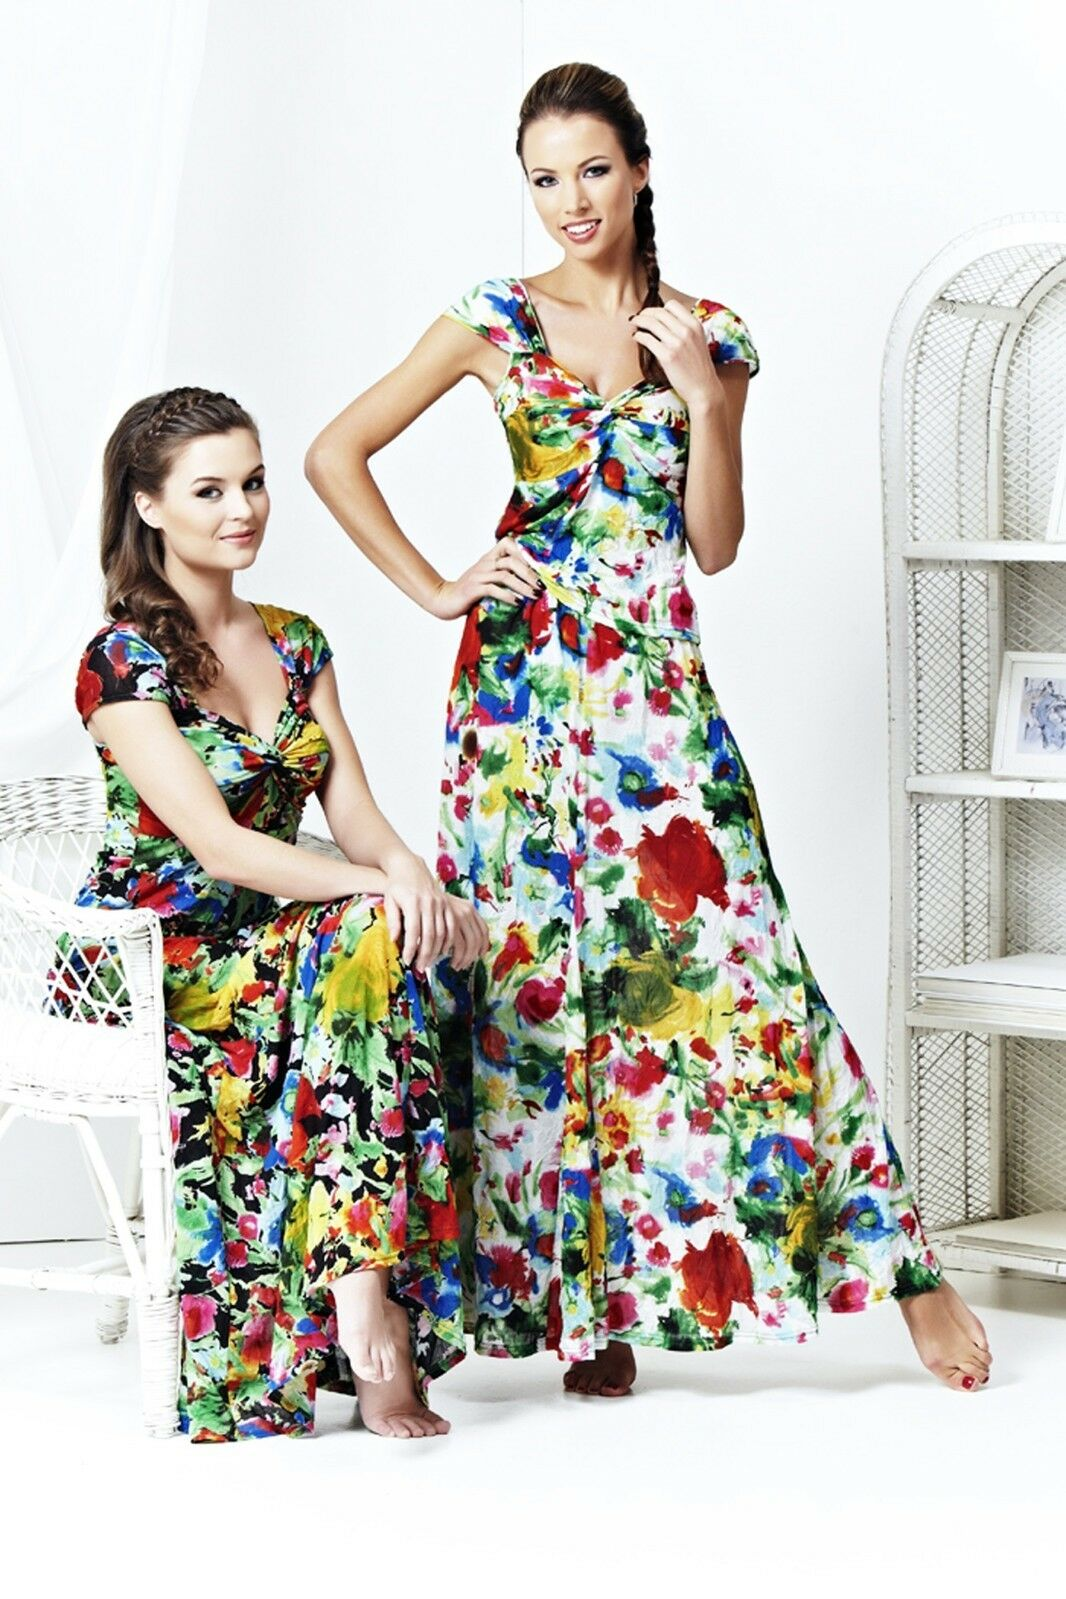 PARTY FLORAL LONG SKIRT SET SUMMER SLEEVELESS TOP MADE IN EUROPE S M L